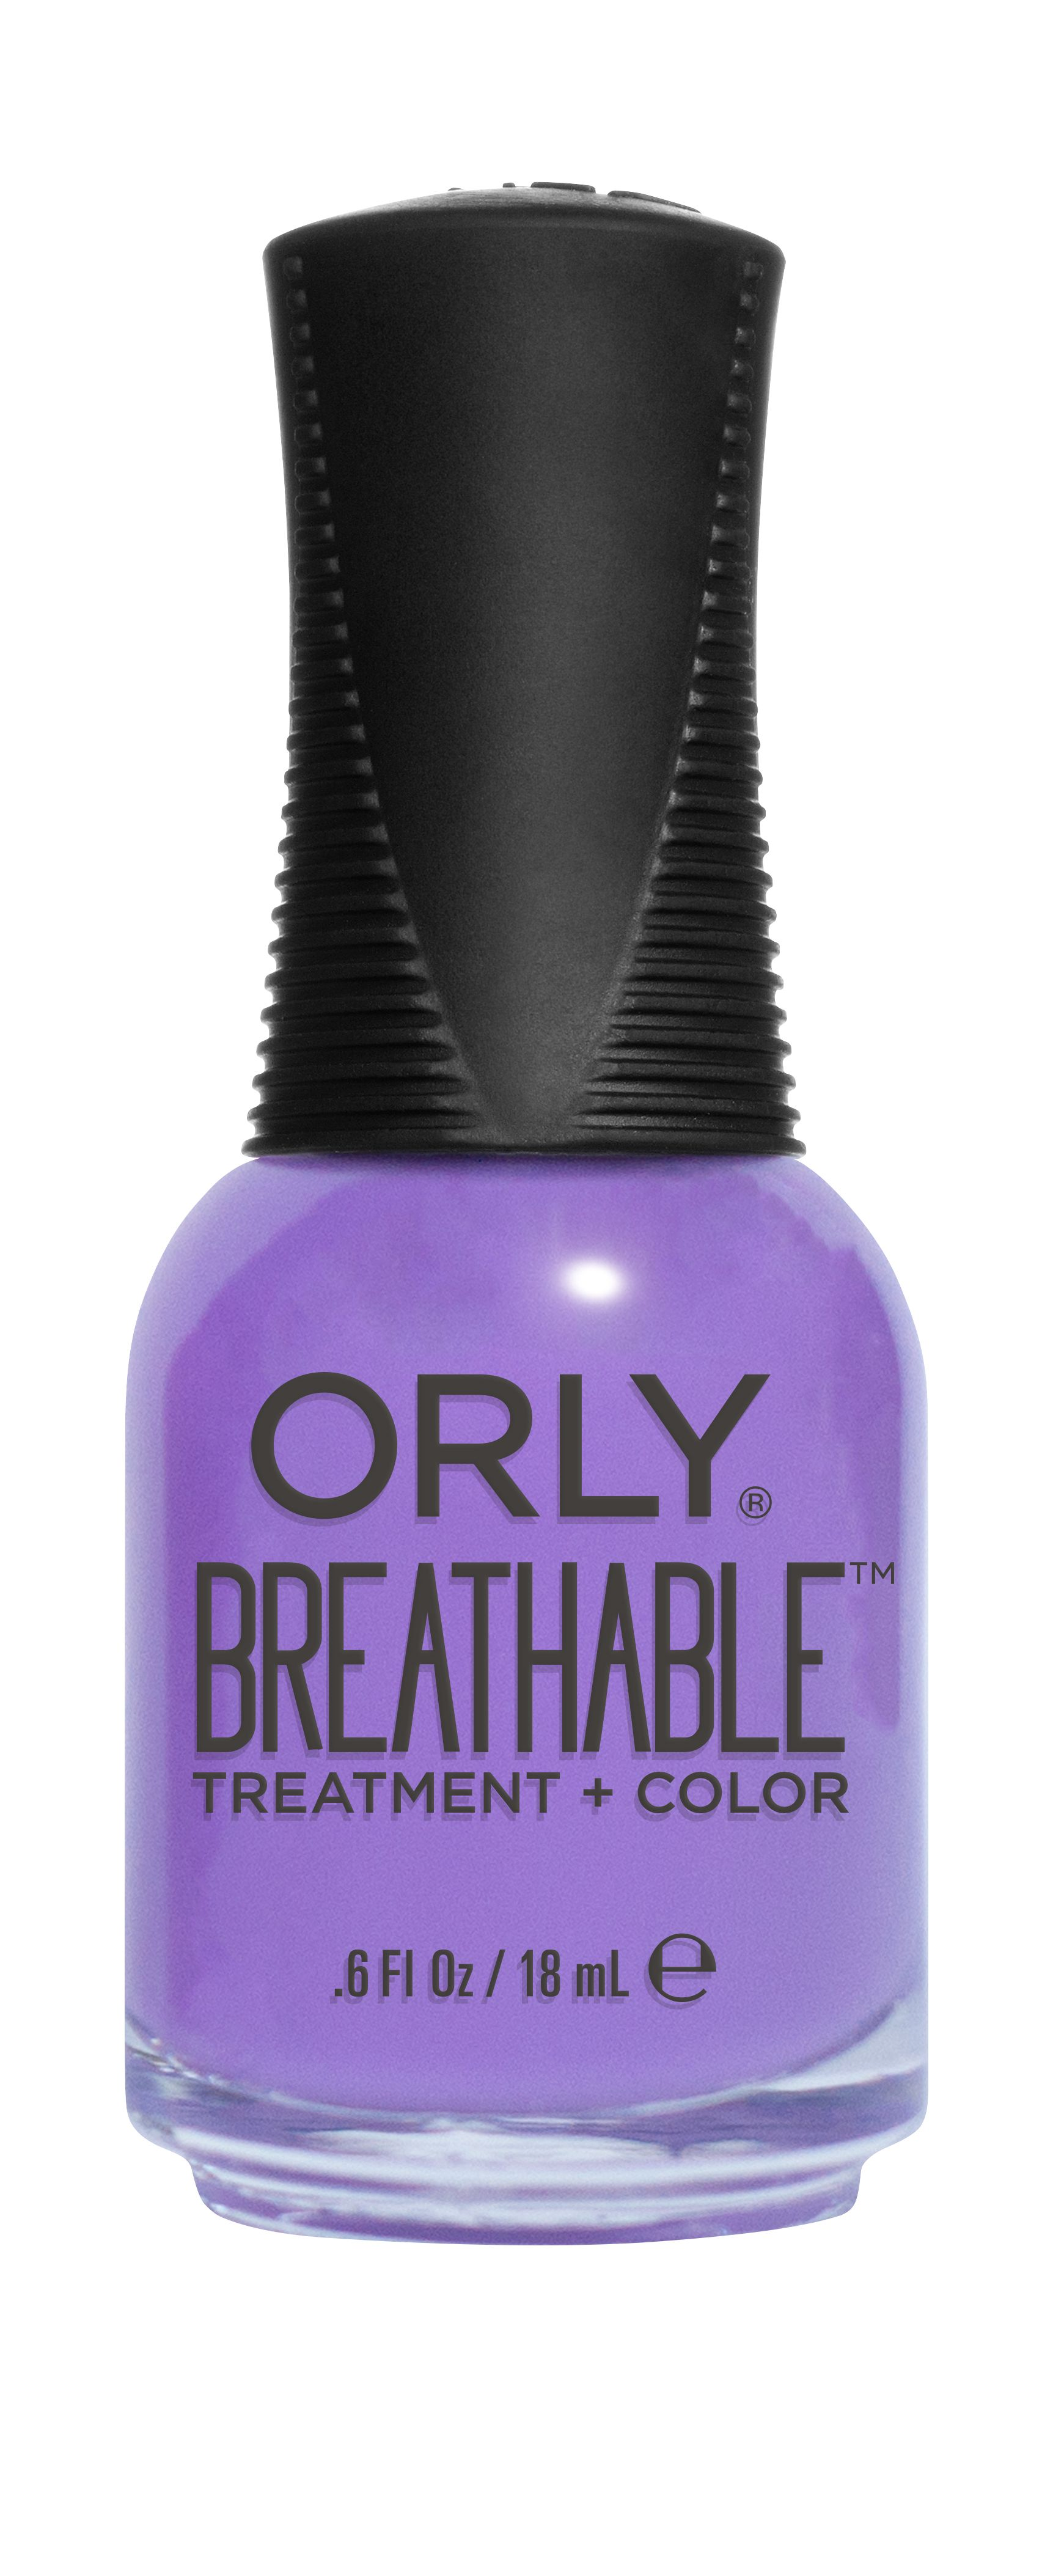 Pin by ORLY Beauty UK on ORLY Breathable Orly breathable